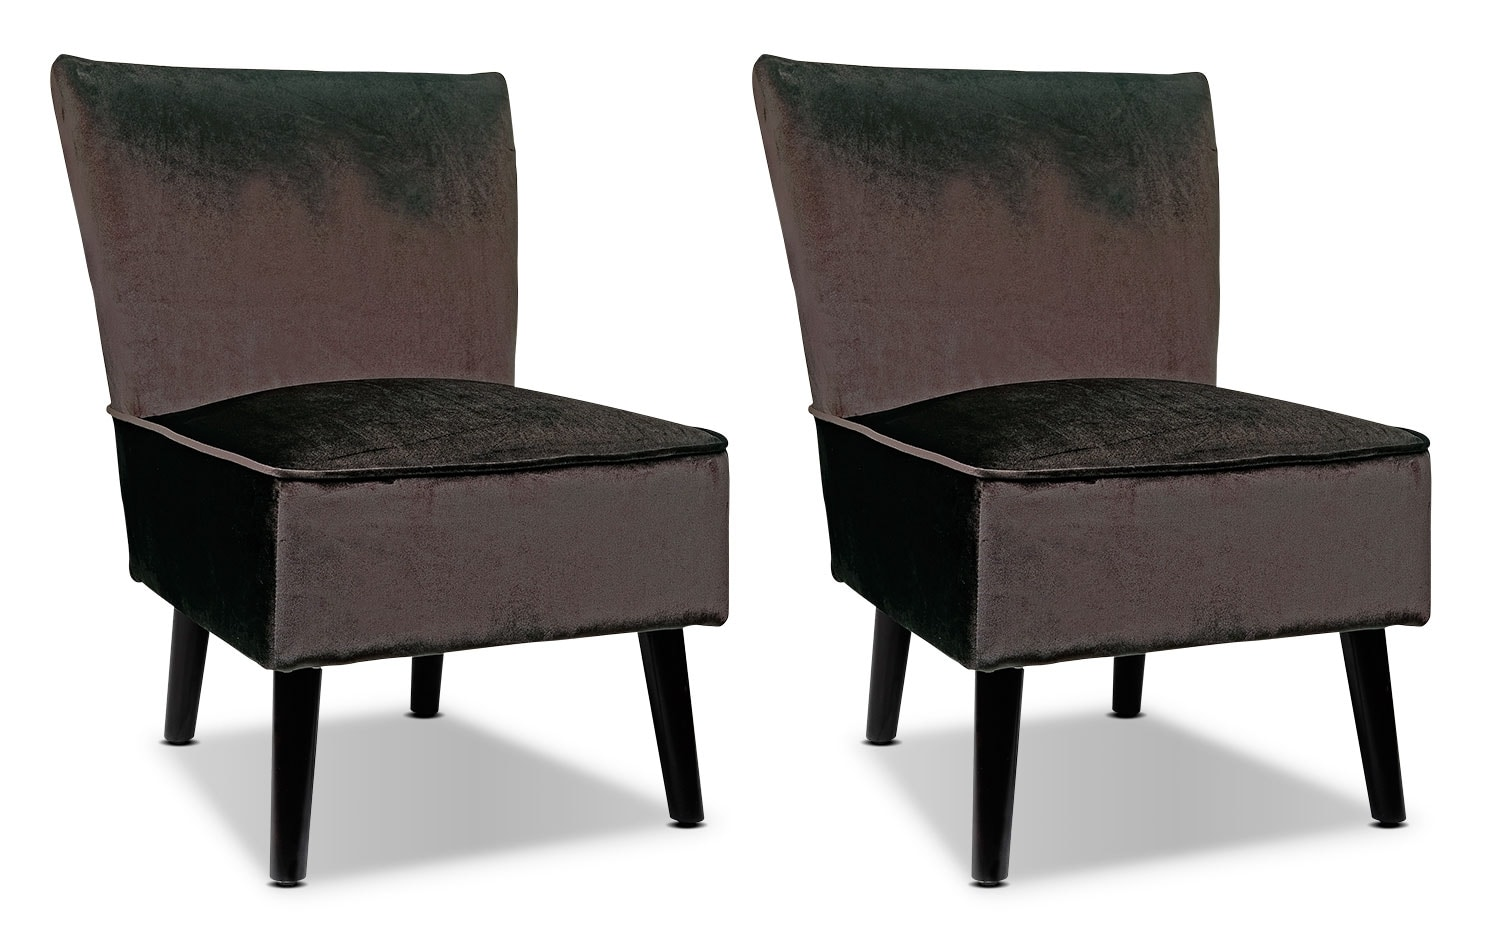 LAD Velvet Fabric Accent Chairs, Set of 2 – Deep Brown